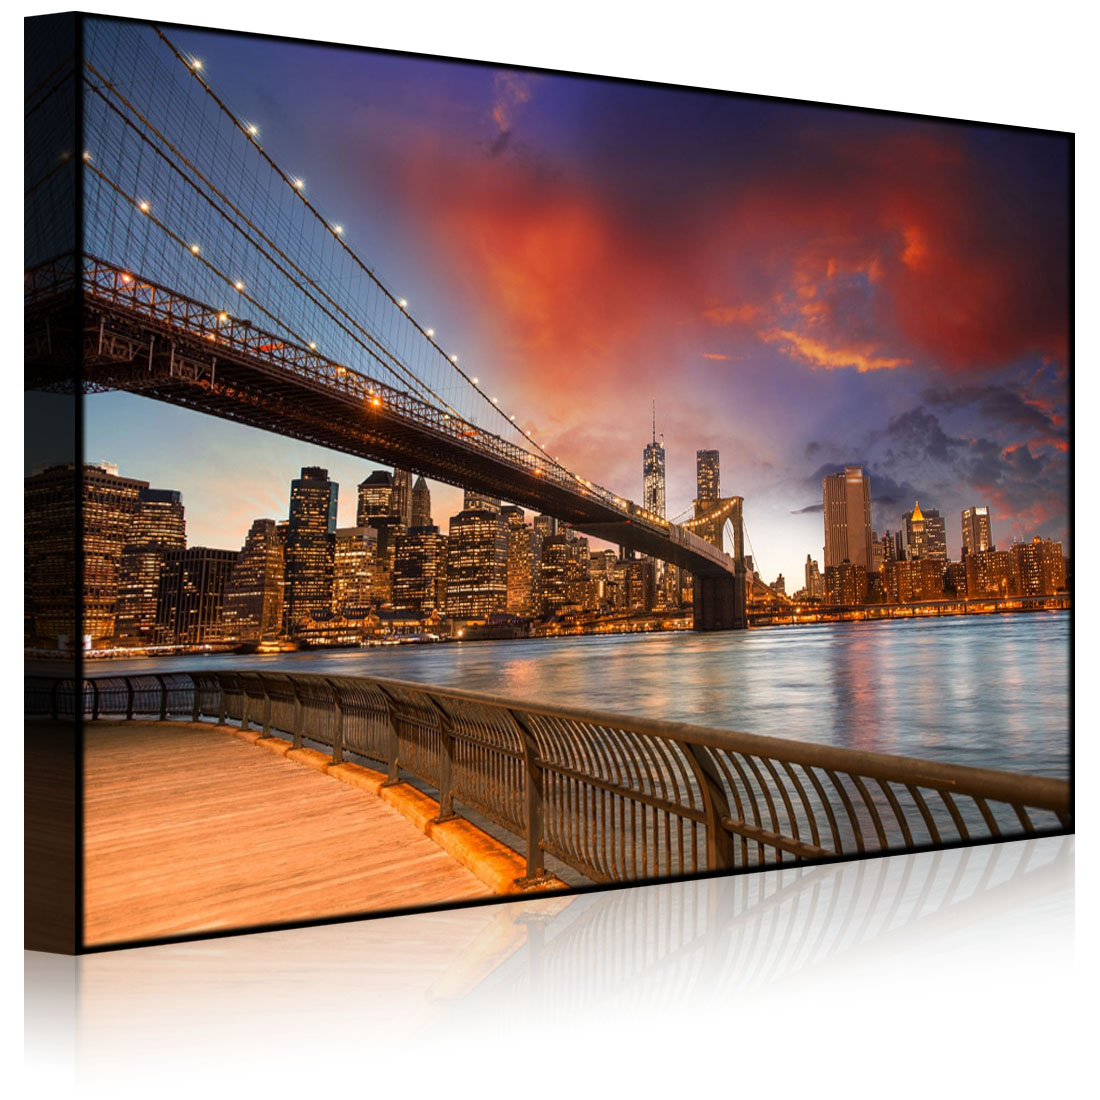 tableau illumin image led parc de brooklyn bridge new york front lighted ebay. Black Bedroom Furniture Sets. Home Design Ideas